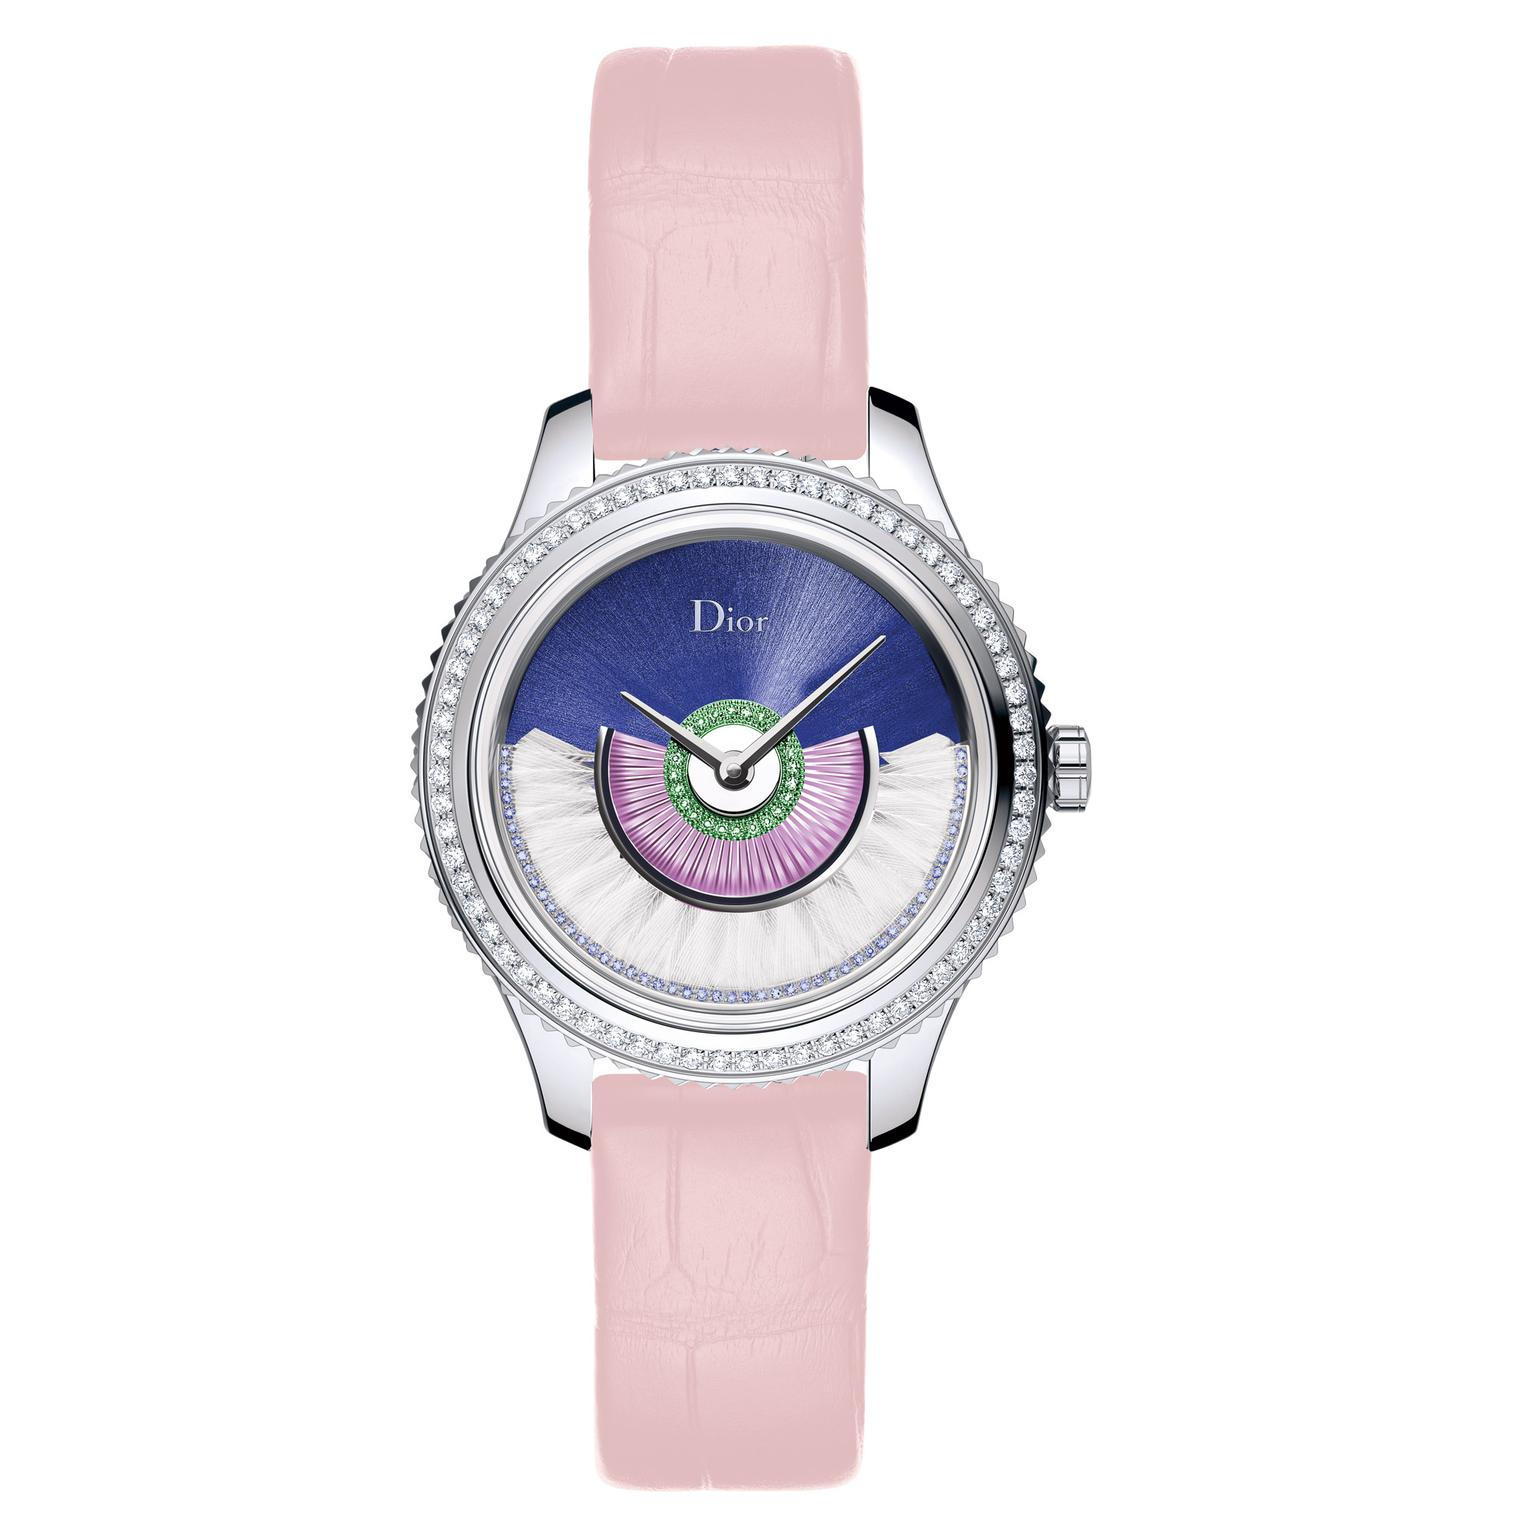 Dior VIII Grand Bal Coquette watch